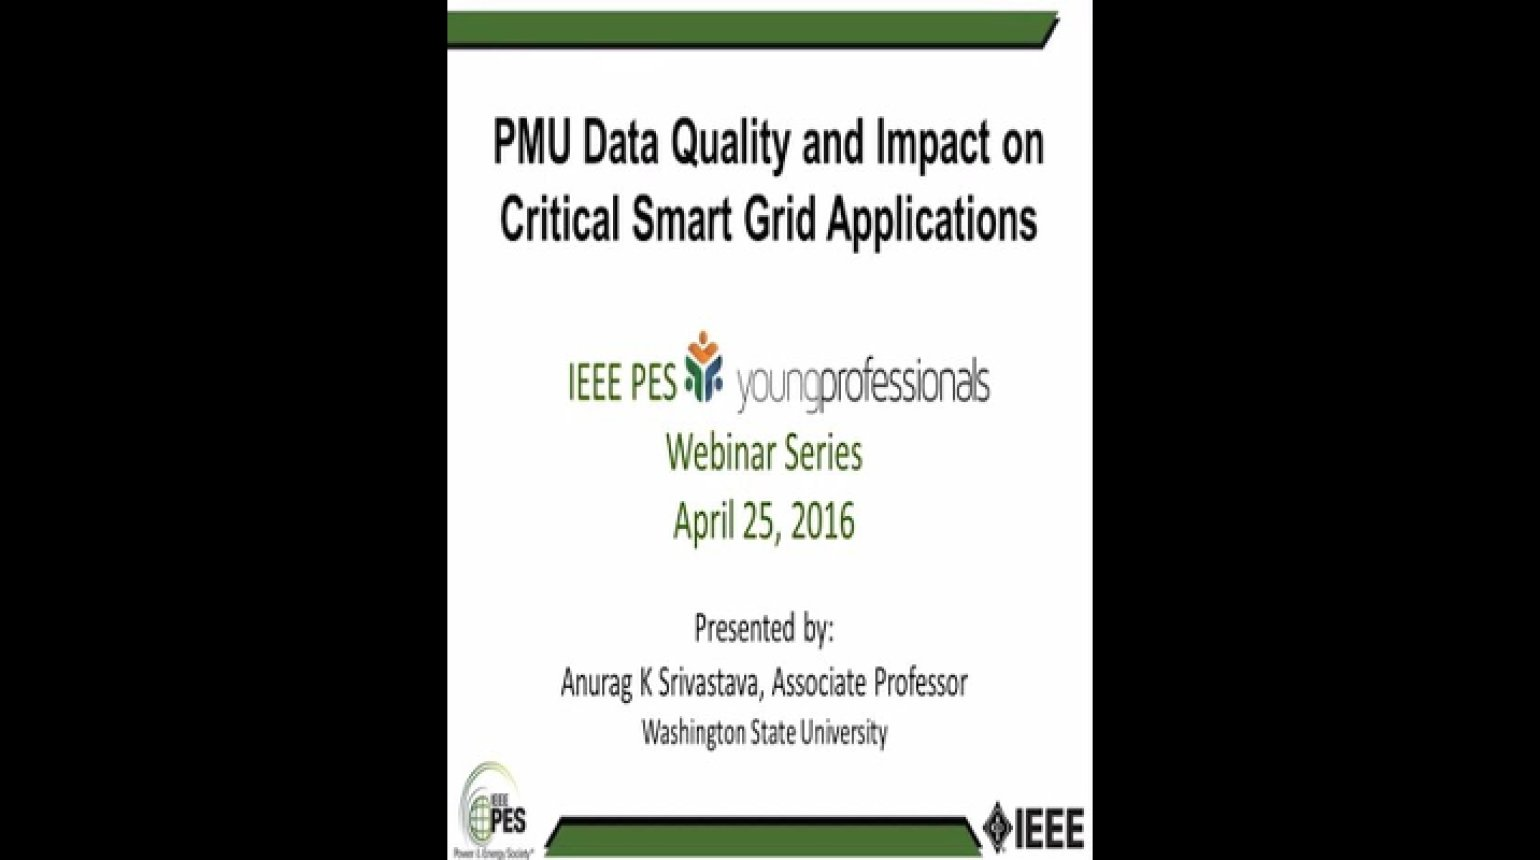 PMU Data Quality and Impact on Critical Smart Grid Applications